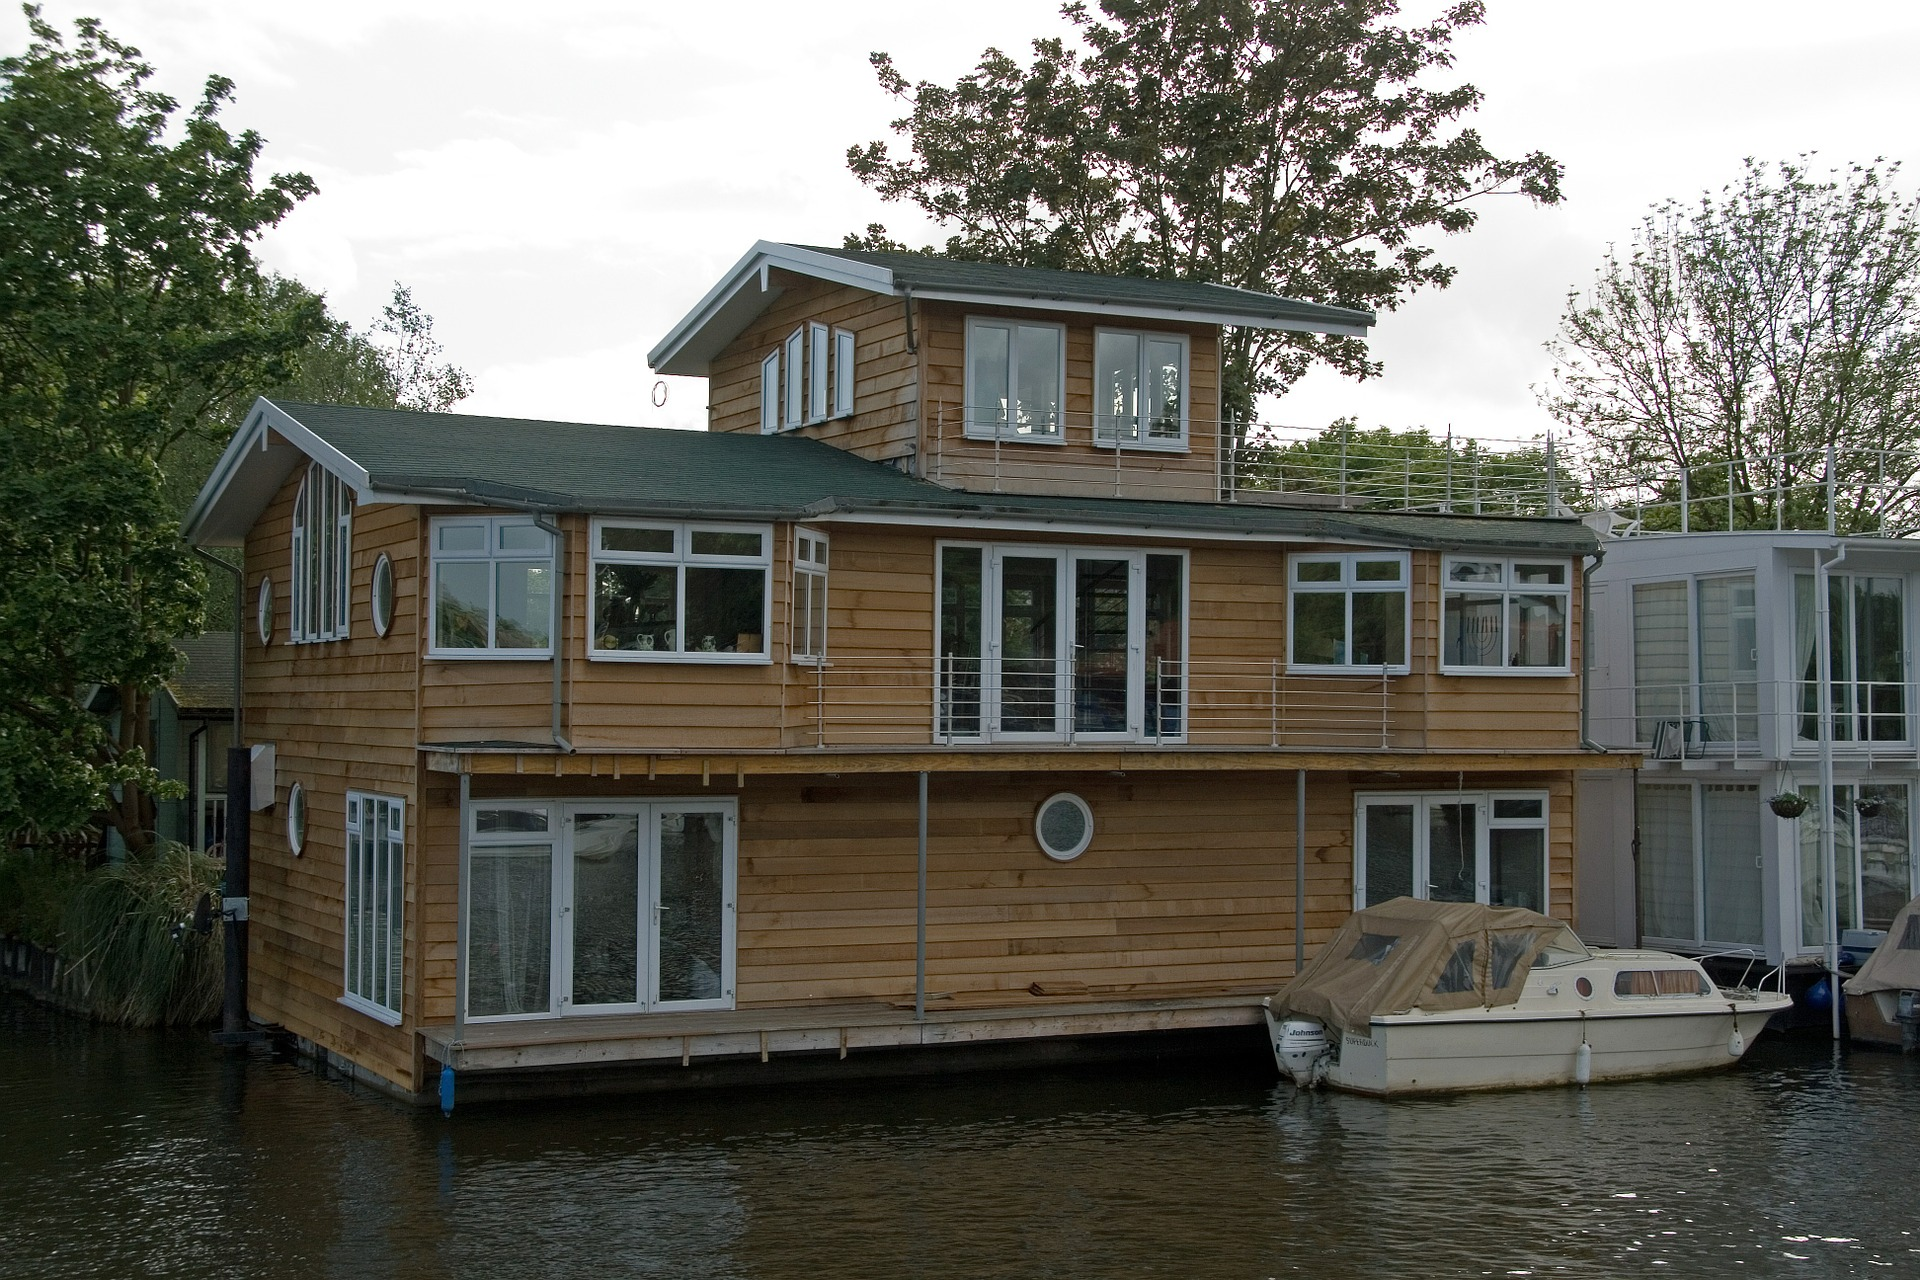 Houseboat-Security-Cameras